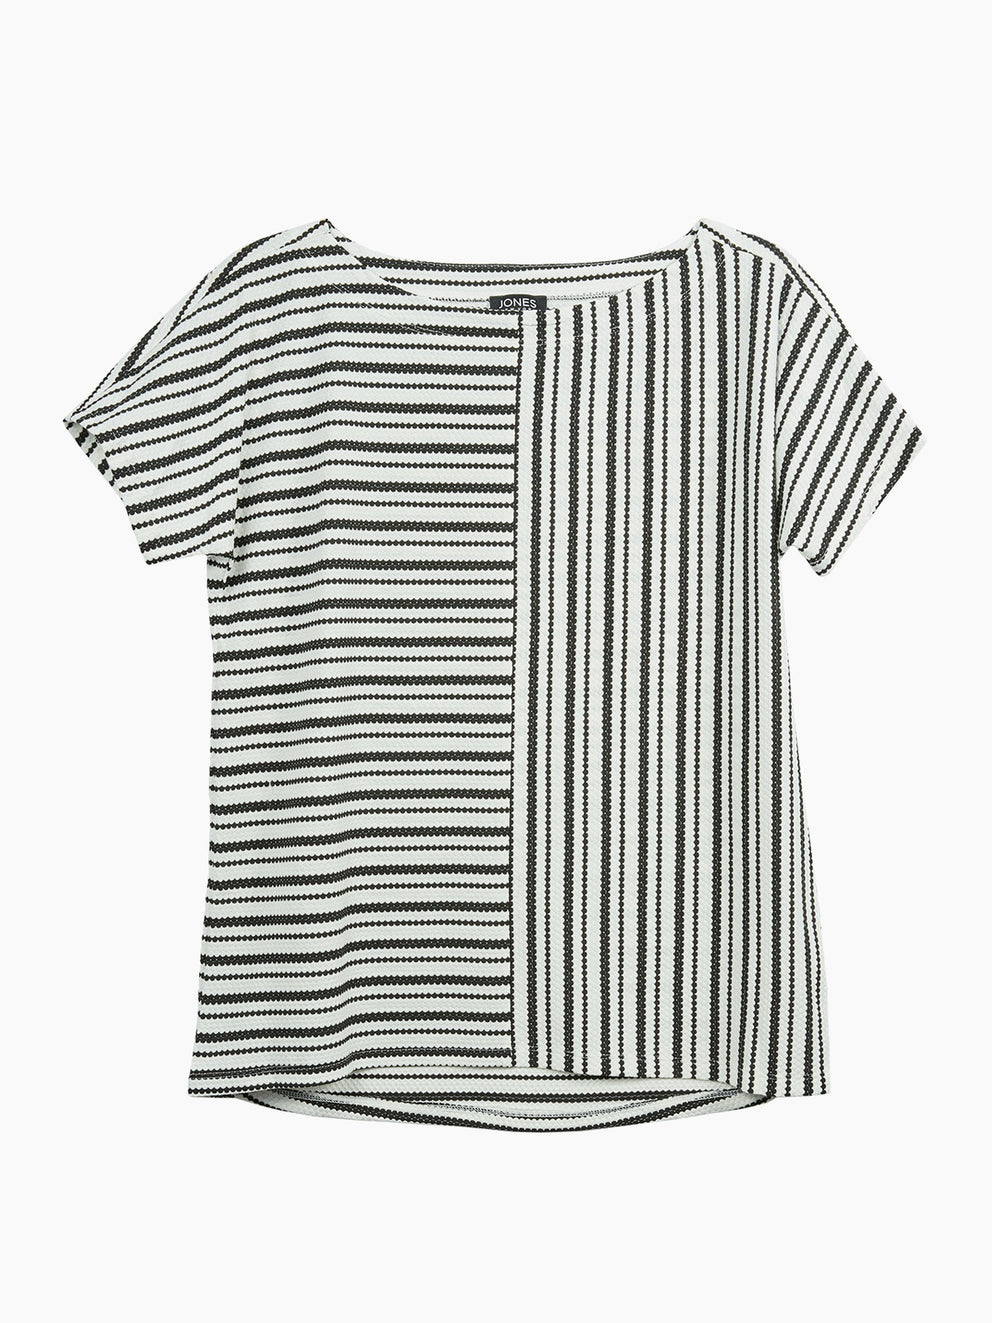 The Jones New York Striped Dolman Sleeve Tee in color Black Combo Stripe - Image Position 1